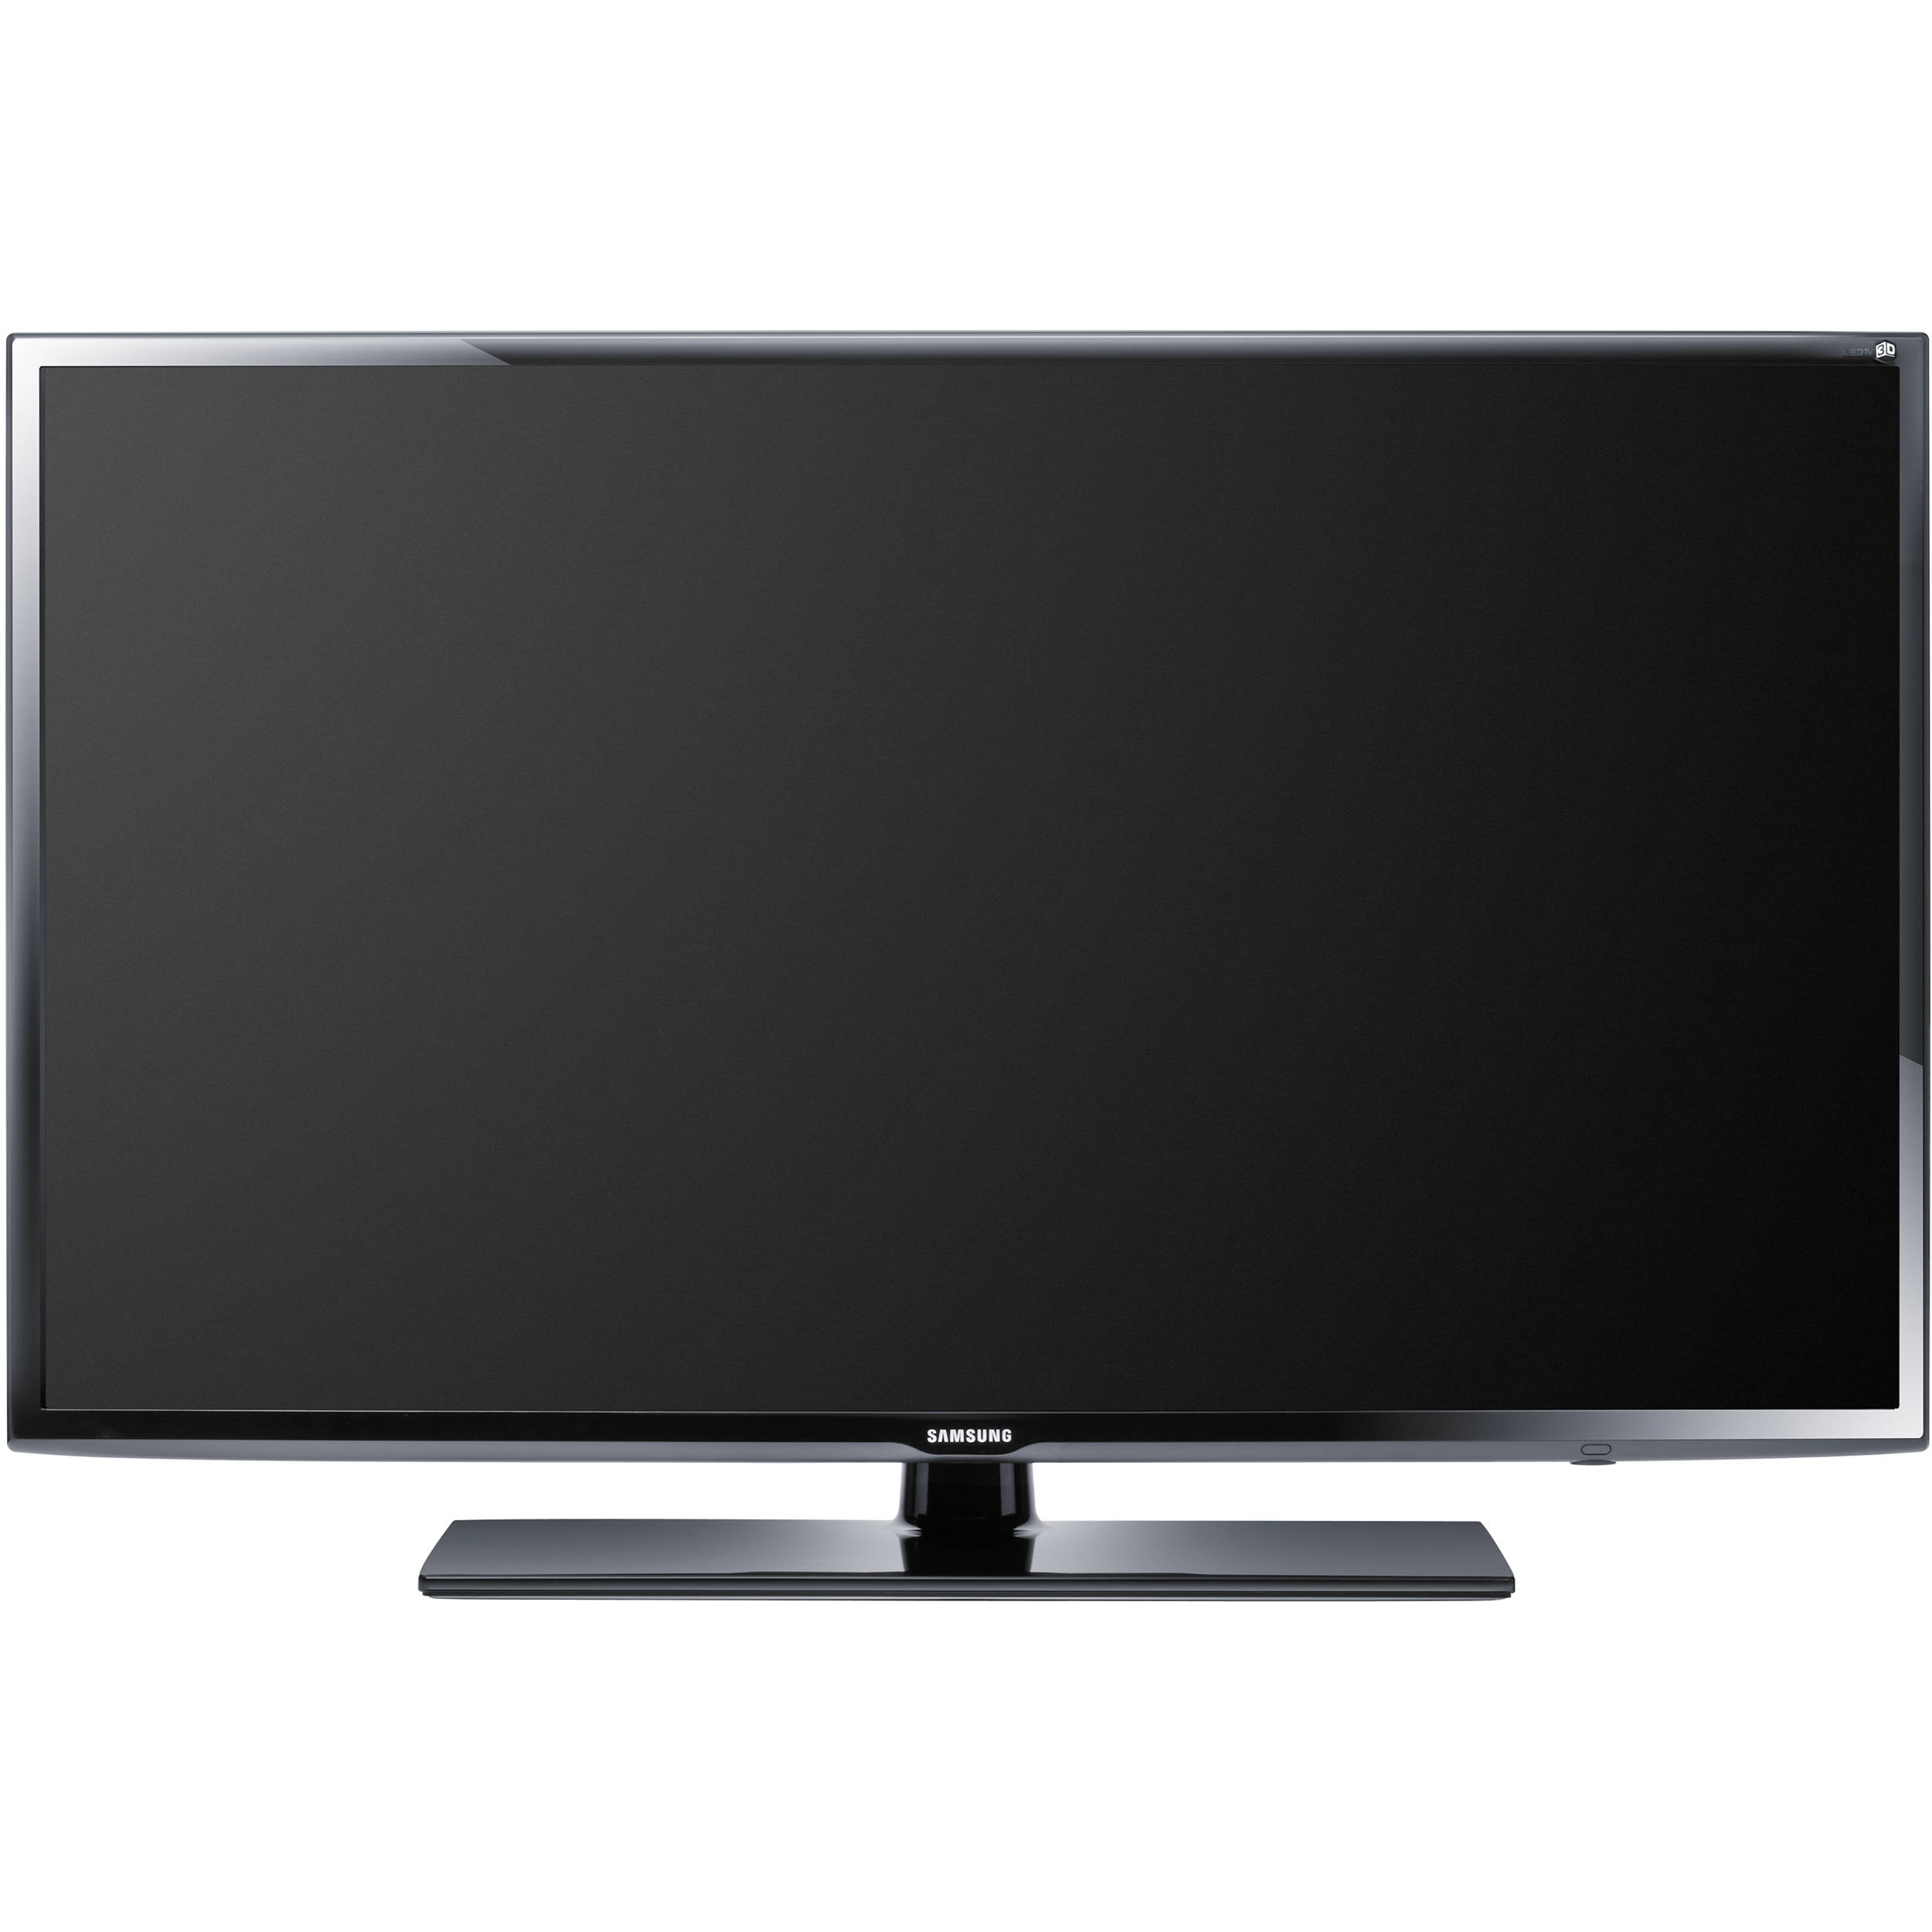 Samsung UN46EH6070F LED TV Drivers for Mac